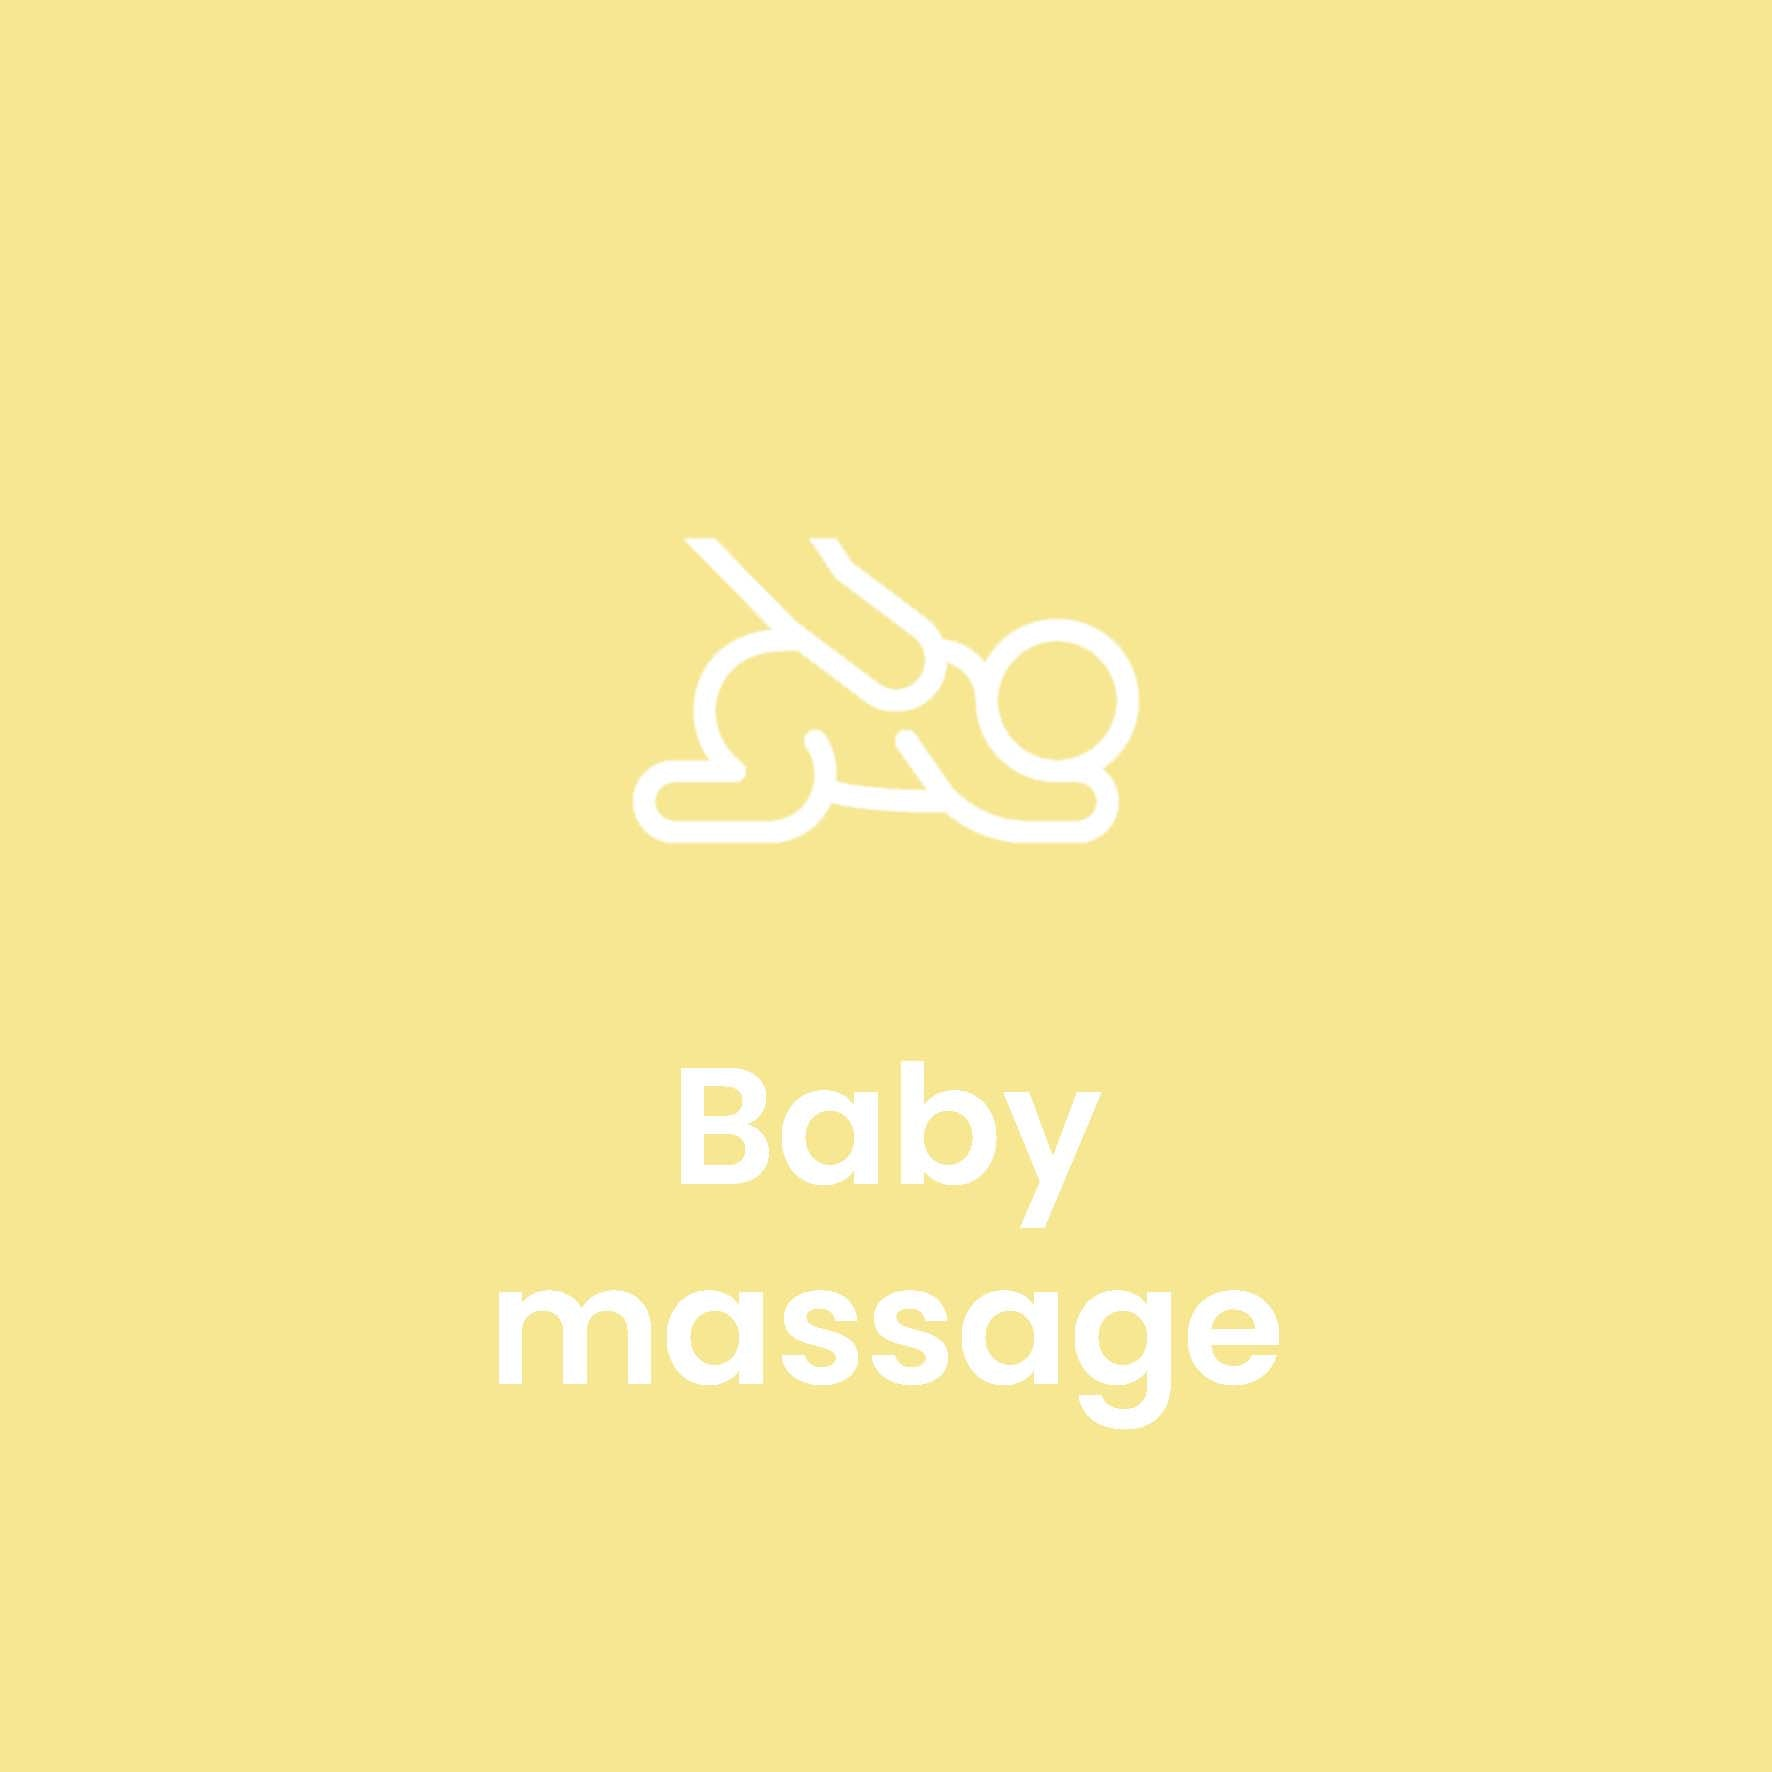 5 Week White City Baby Massage Course July To August 2020 The Happy Birth Club